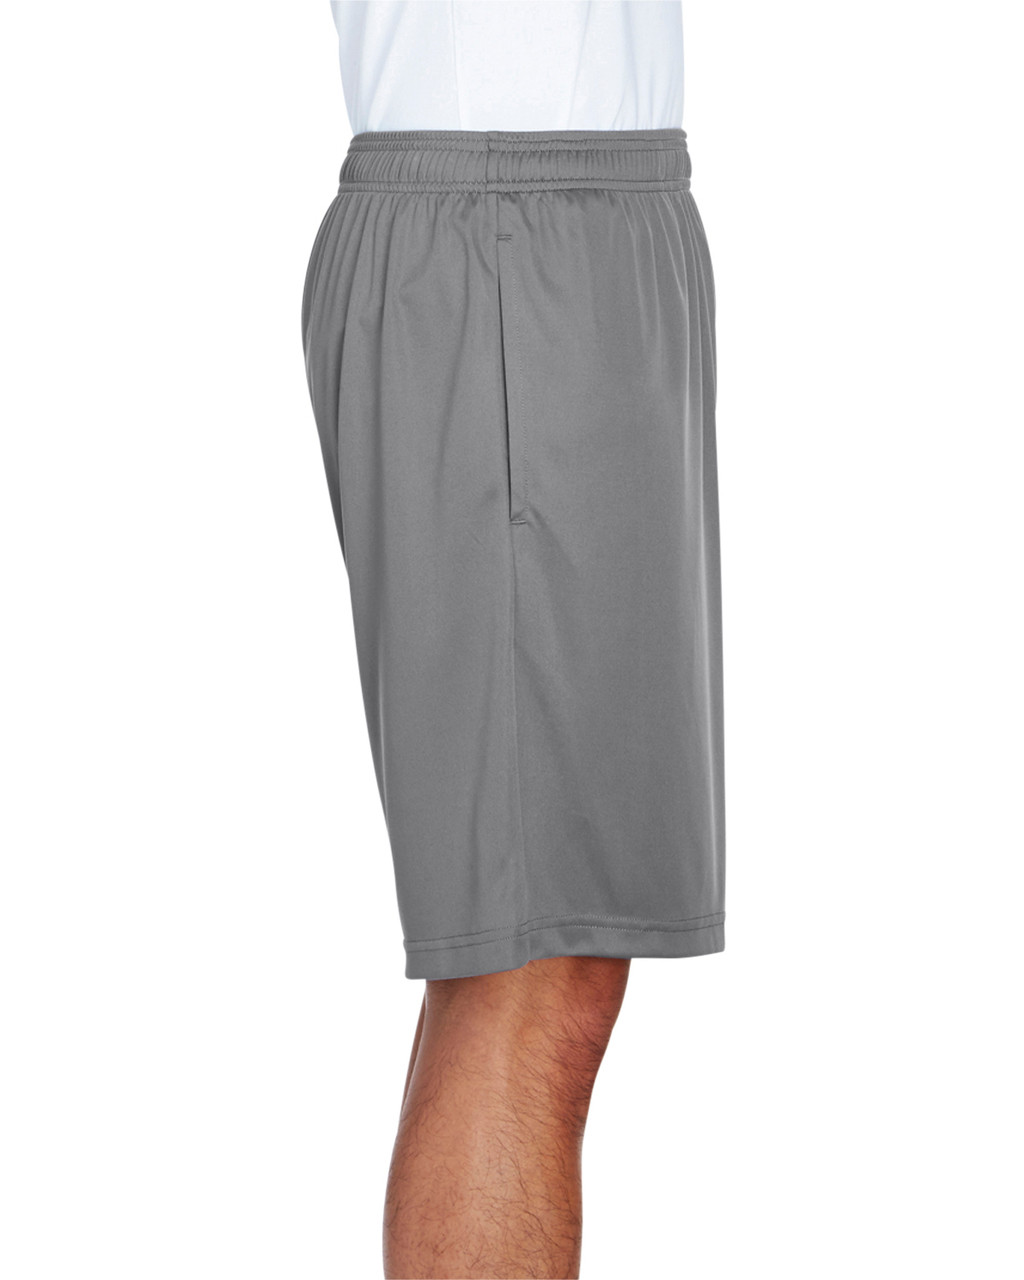 Sport Graphite -  Side, TT11SH Team 365 Men's Zone Performance Short | BlankClothing.ca